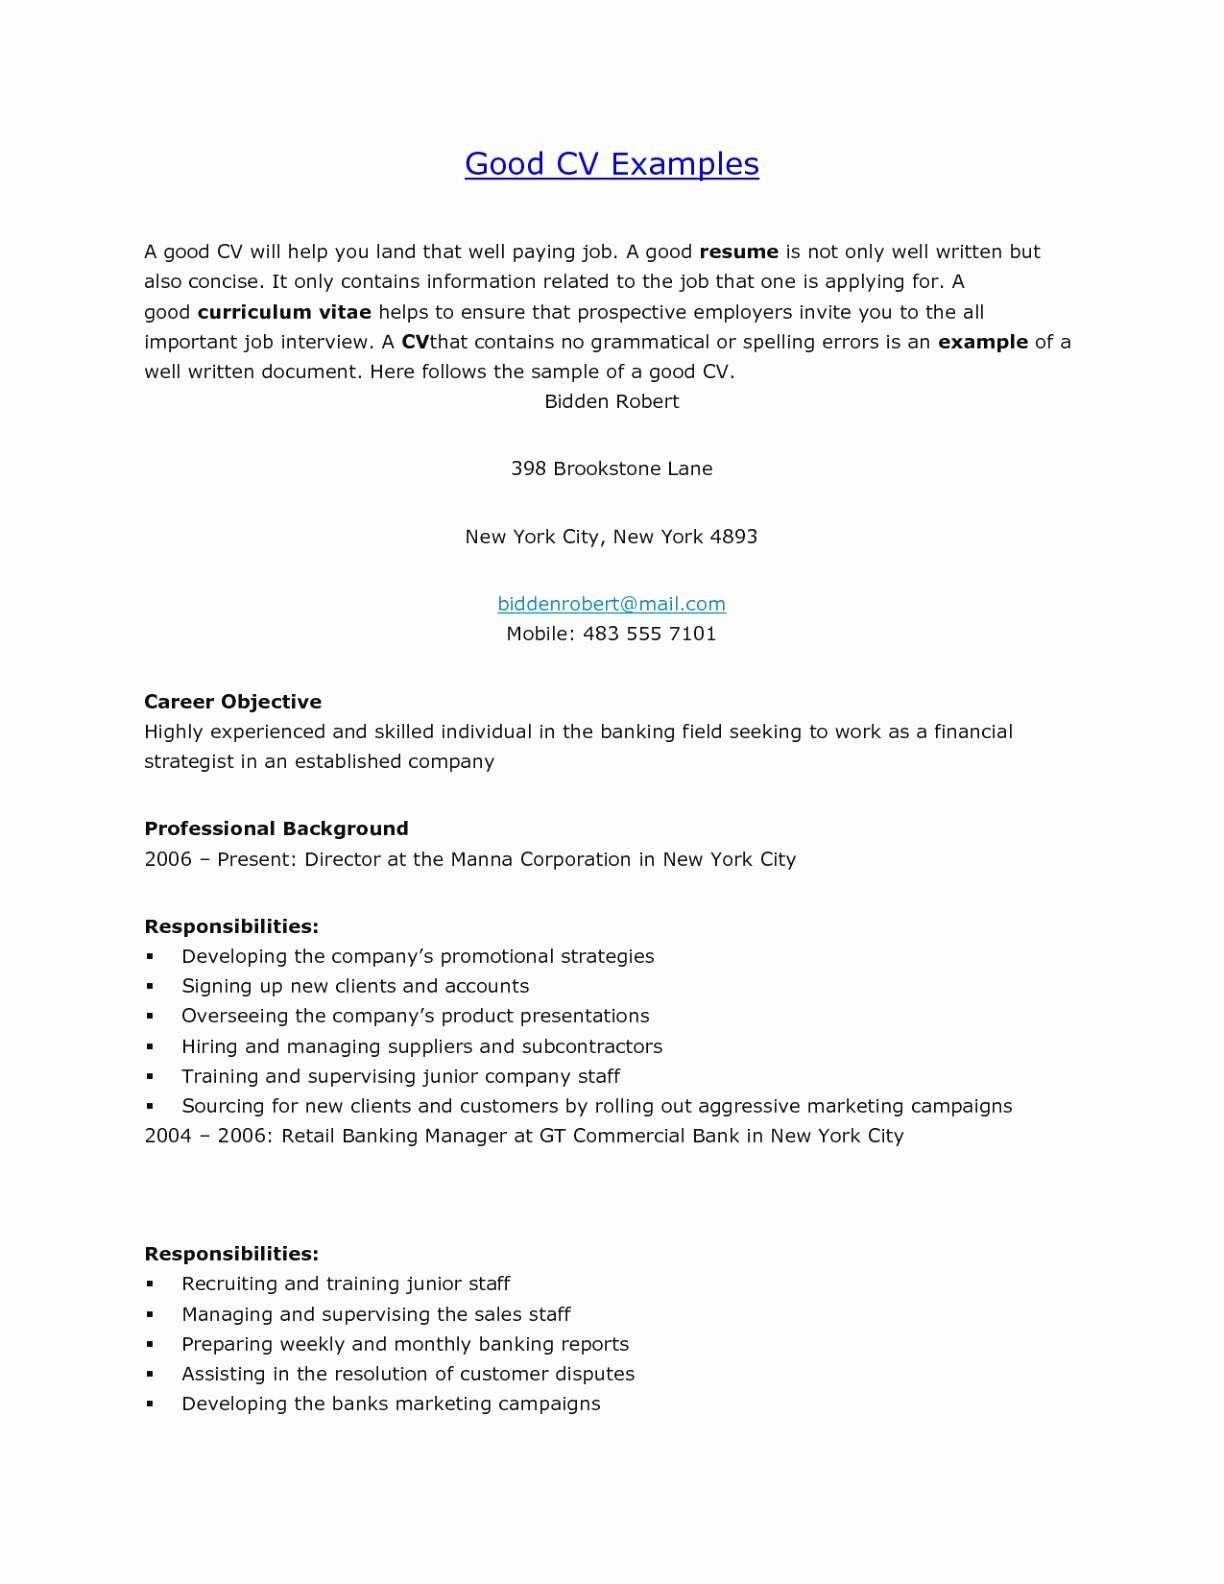 Collaborate Synonym - Collaborate Synonym Resume